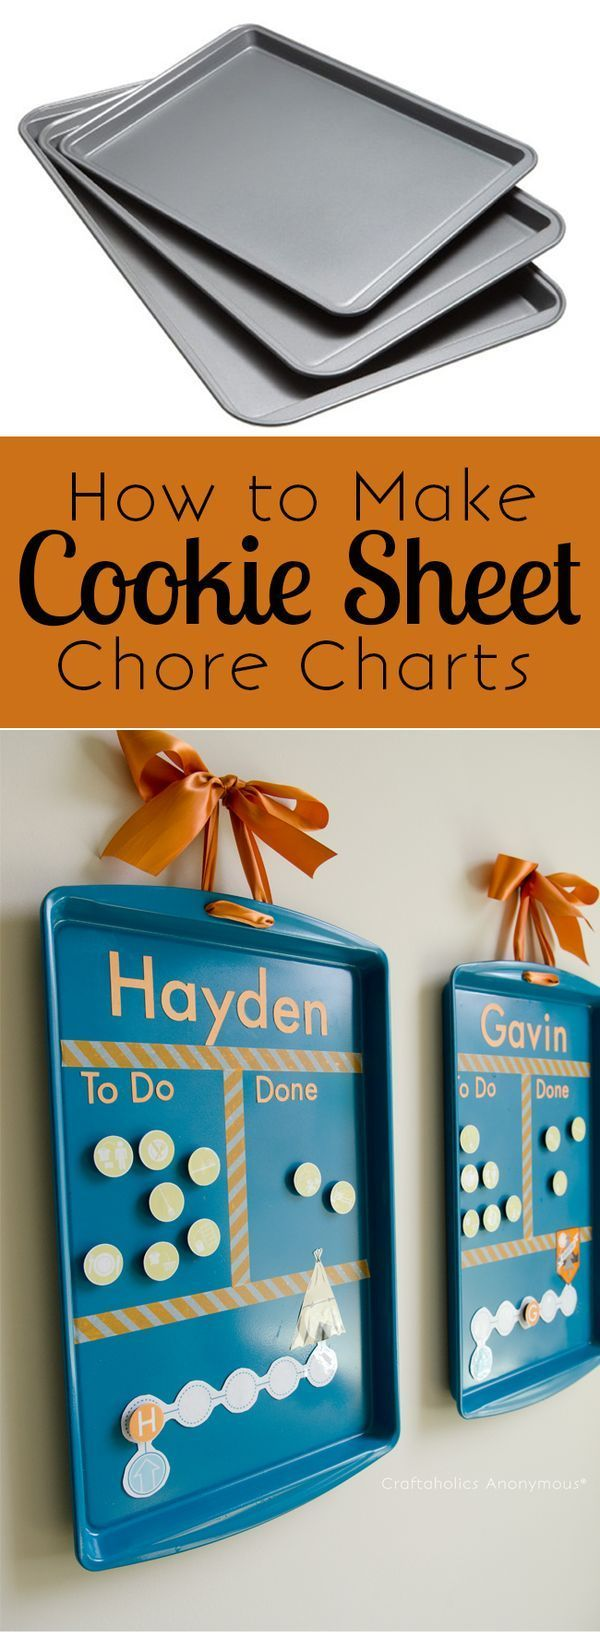 DIY Cookie Sheet Chore Charts   Free printable, Chart and Easy